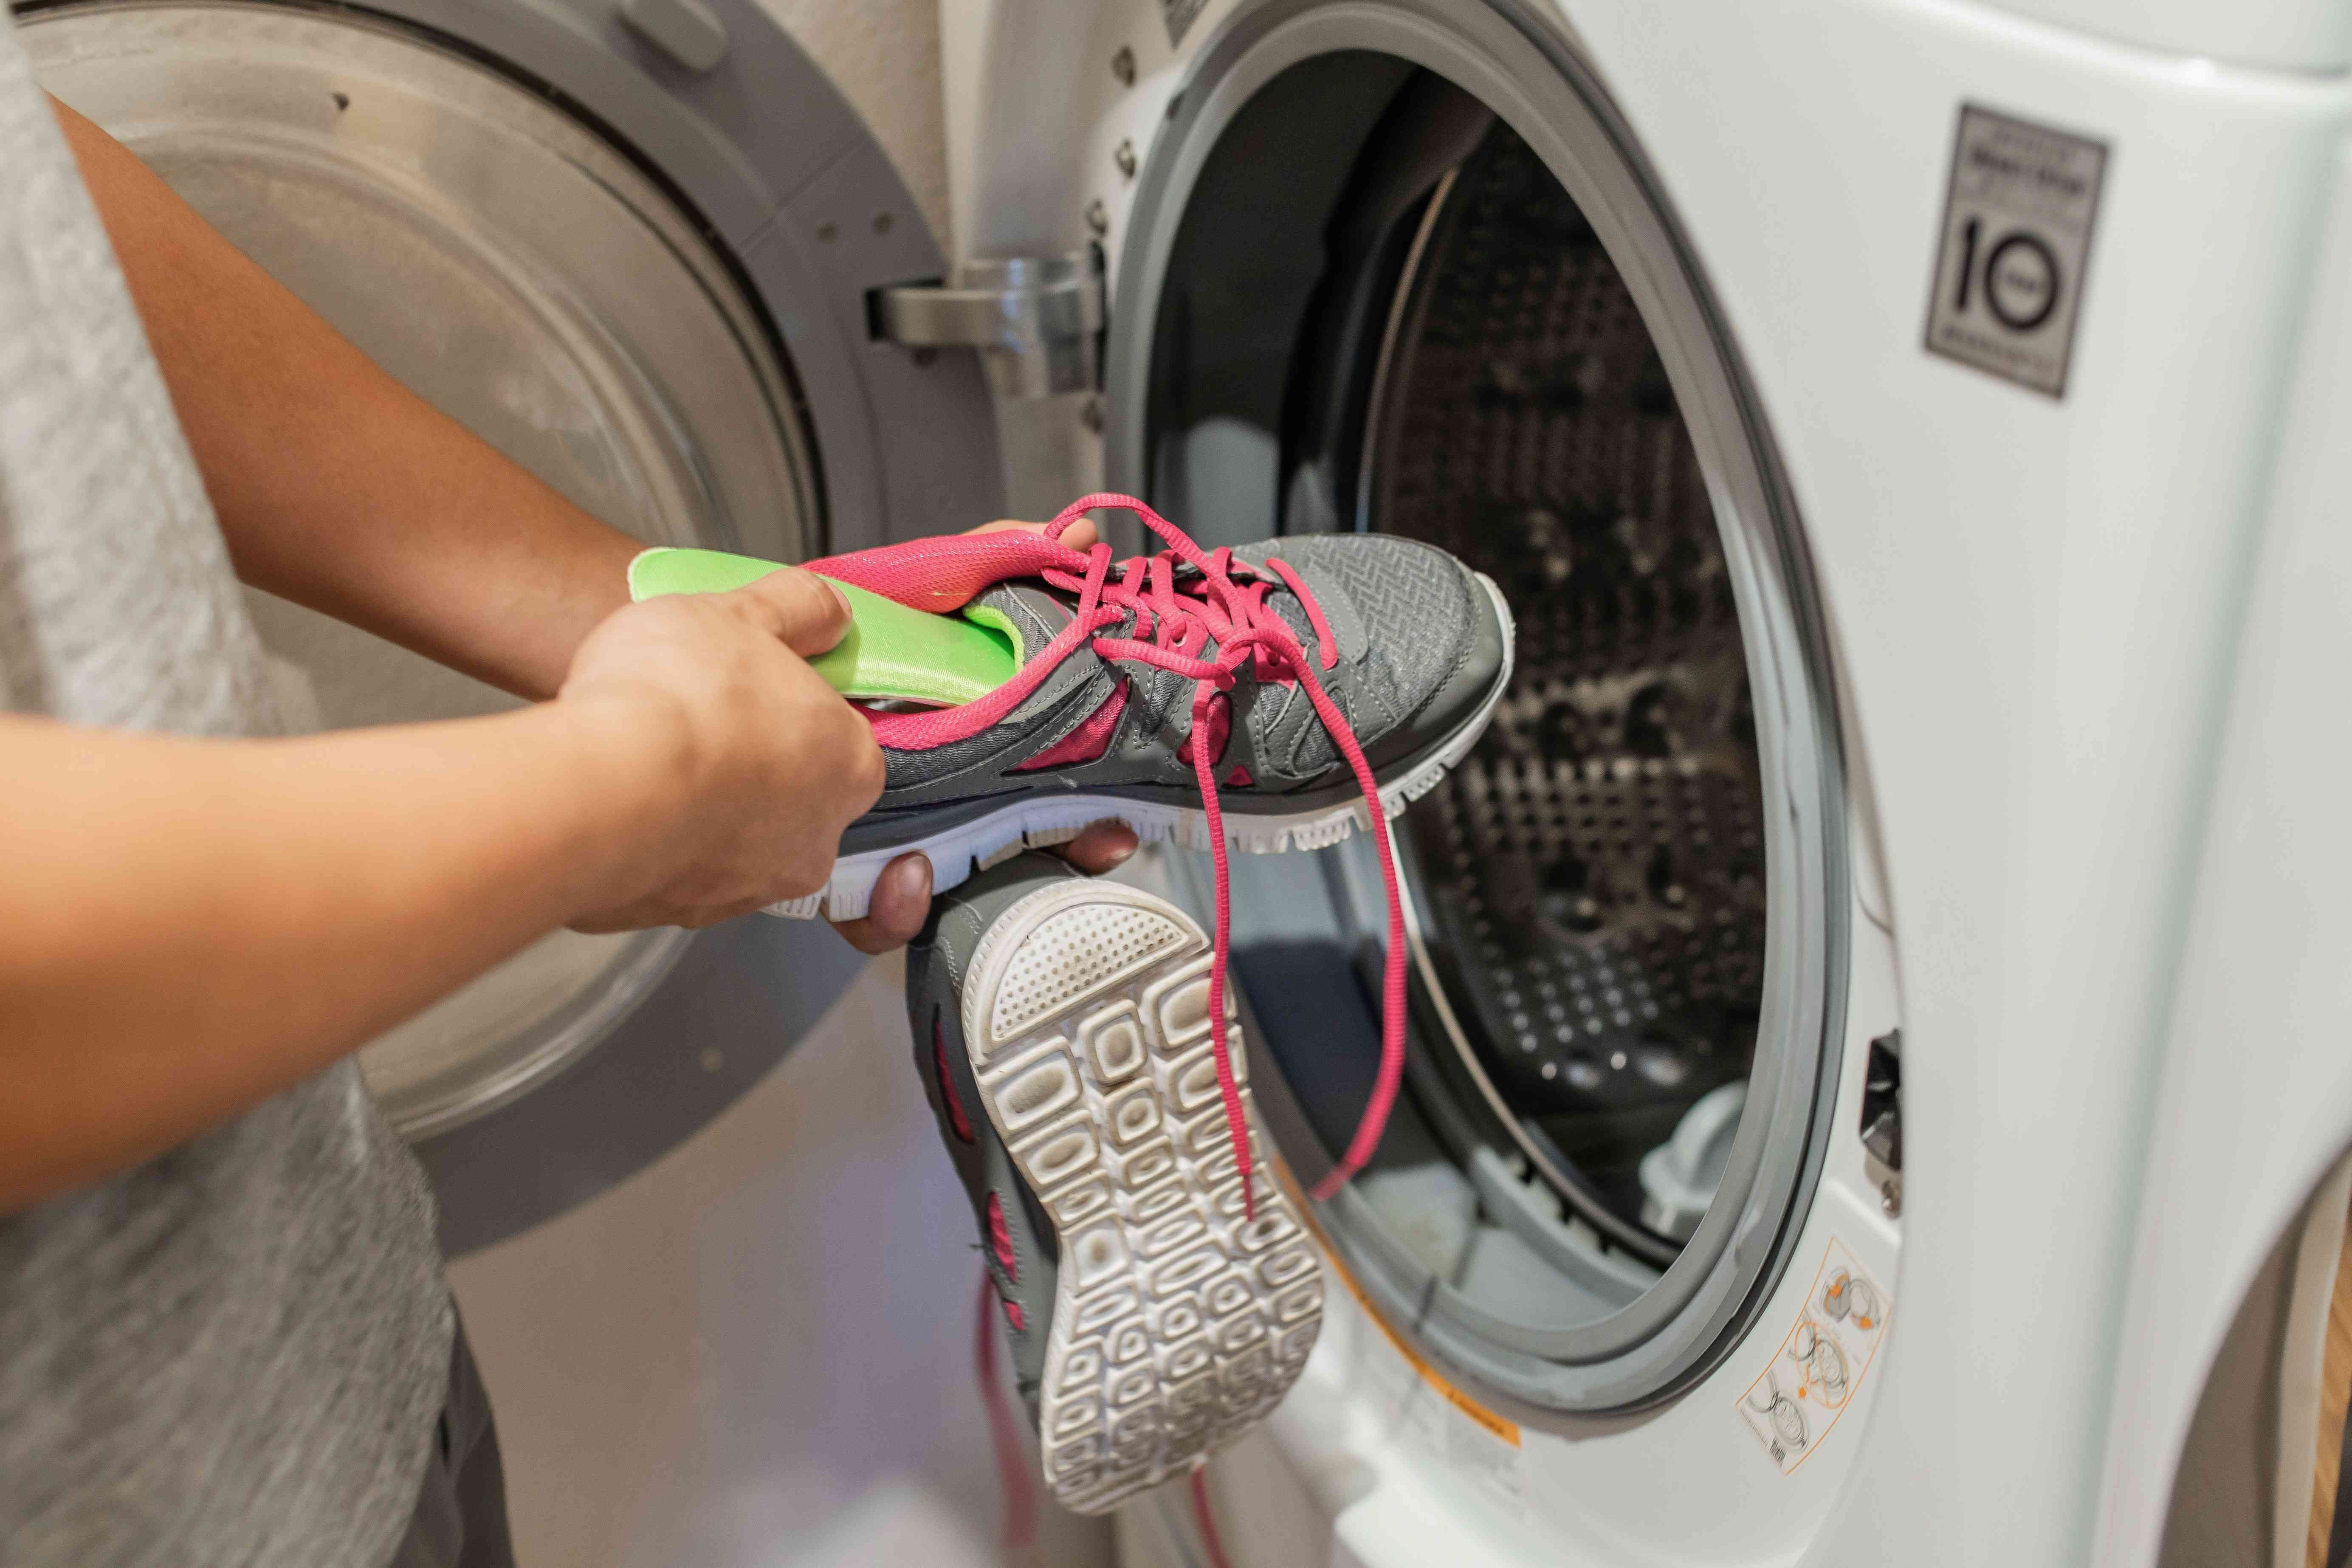 person tossing sneakers into the washer